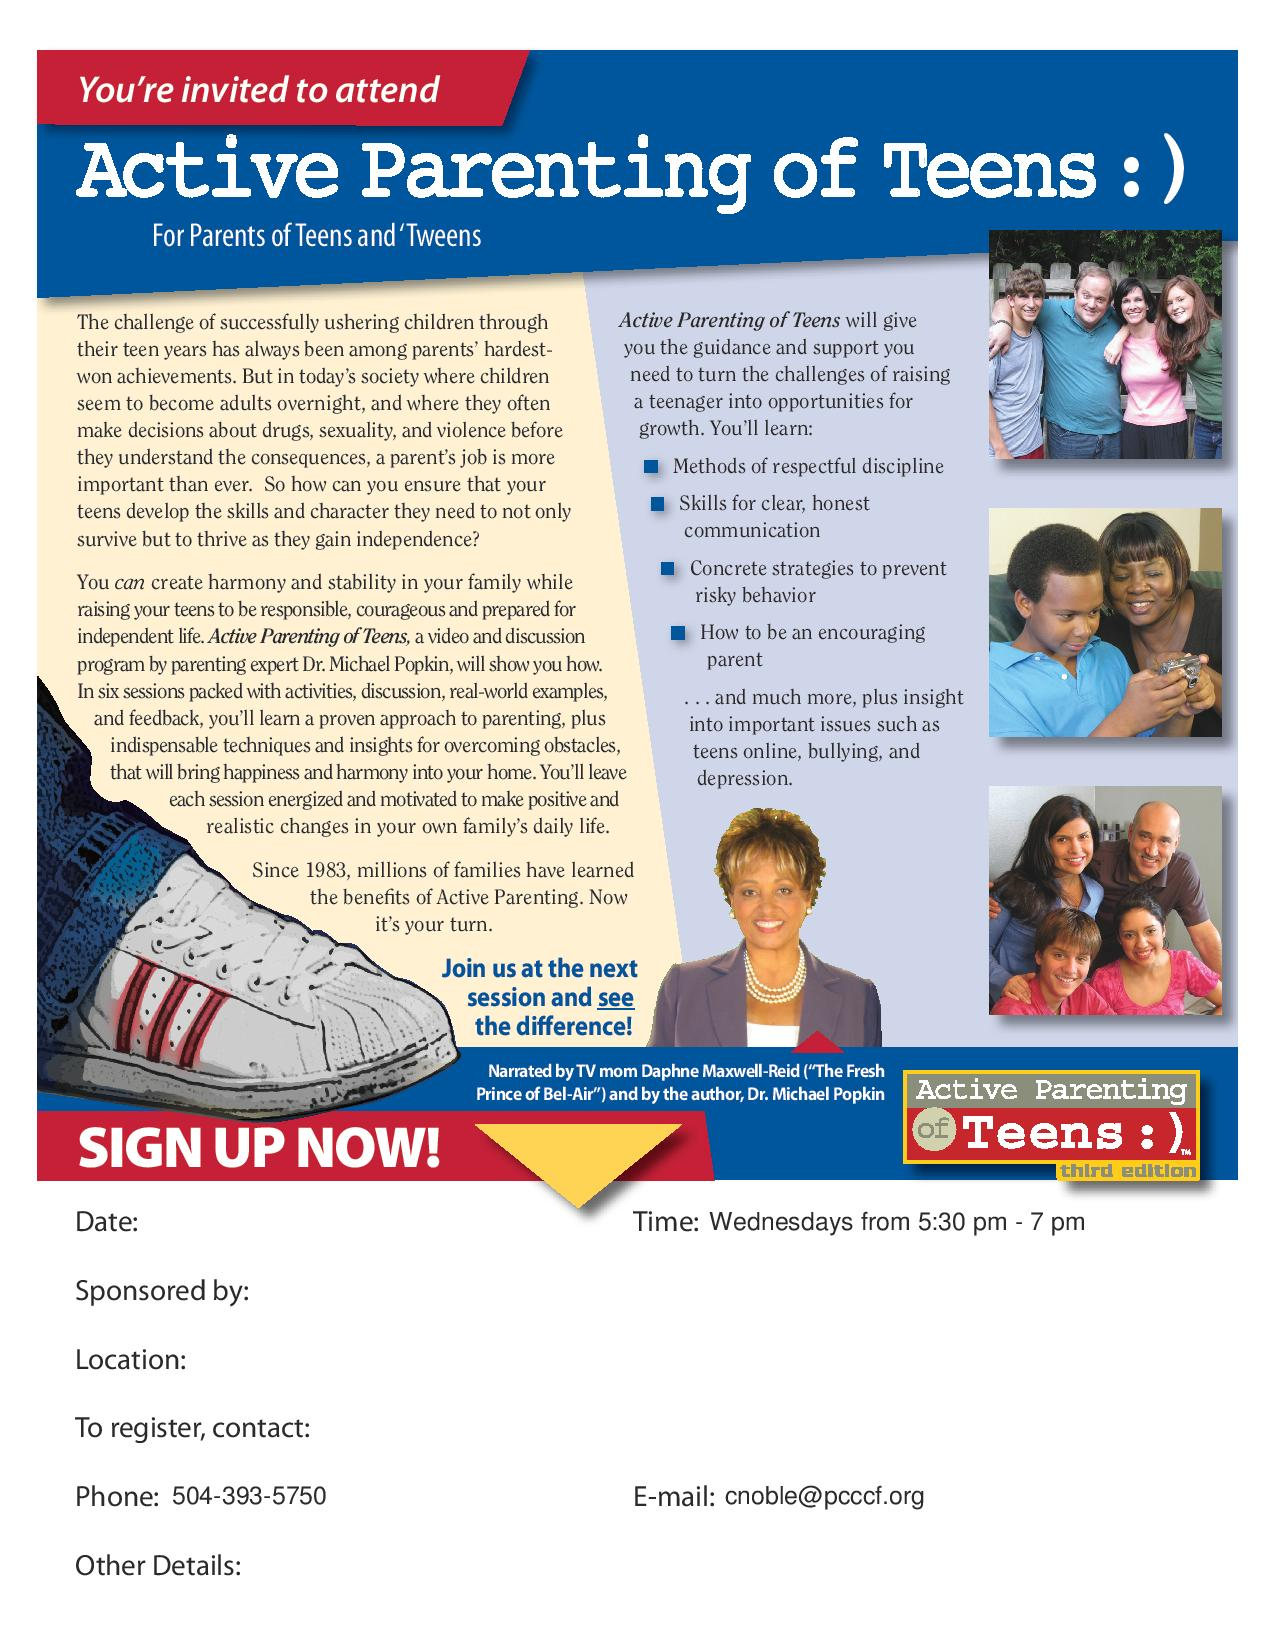 Active Parenting of Teens Flier -page-001.jpg